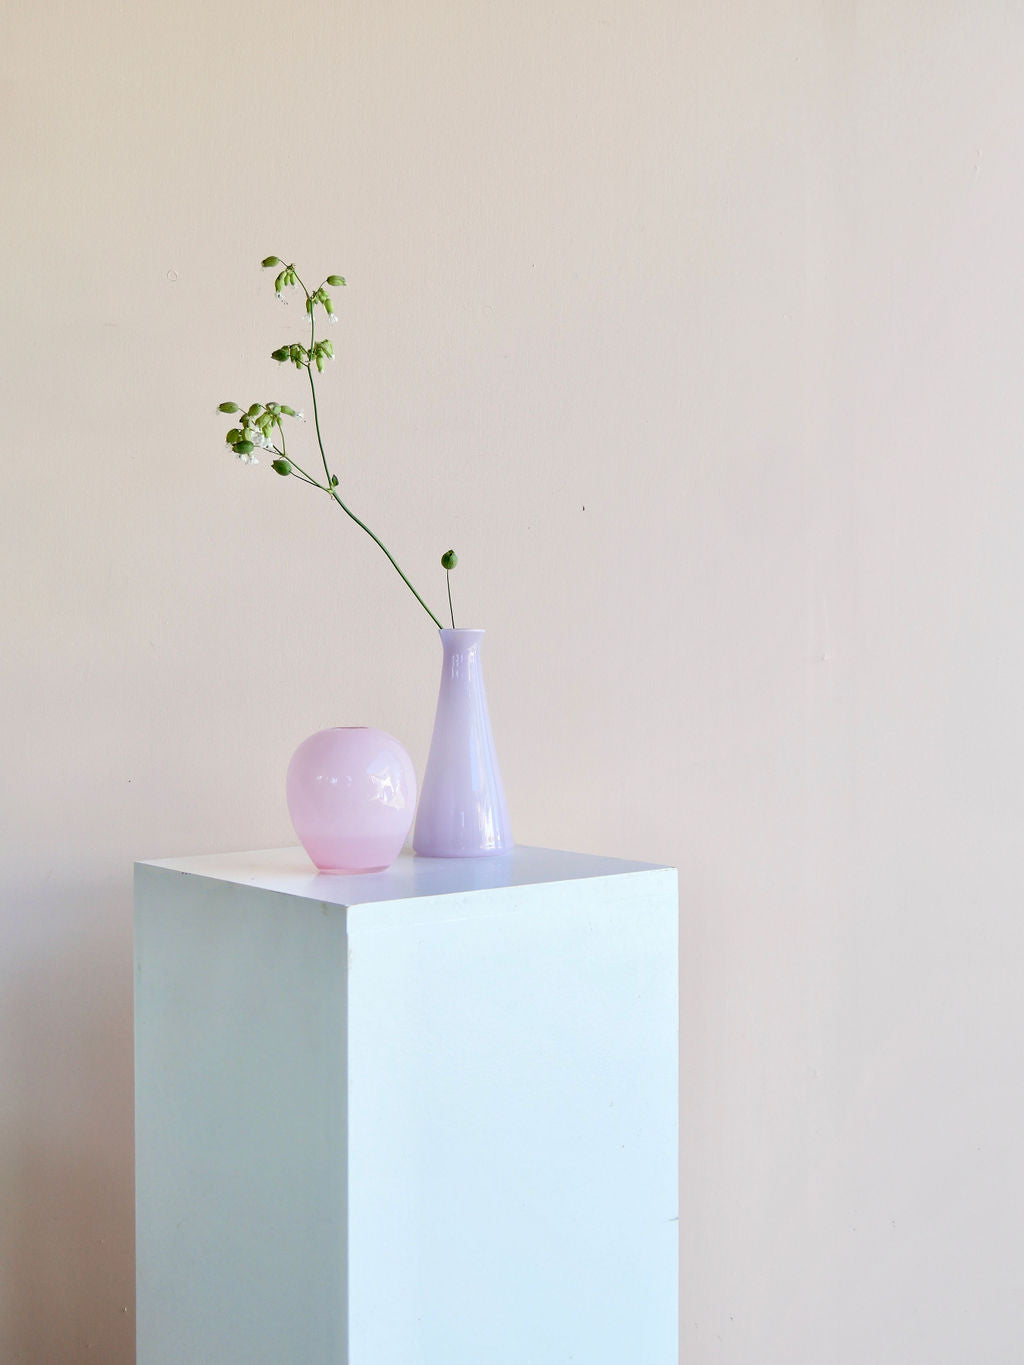 isadia x monmouth vase collaboration